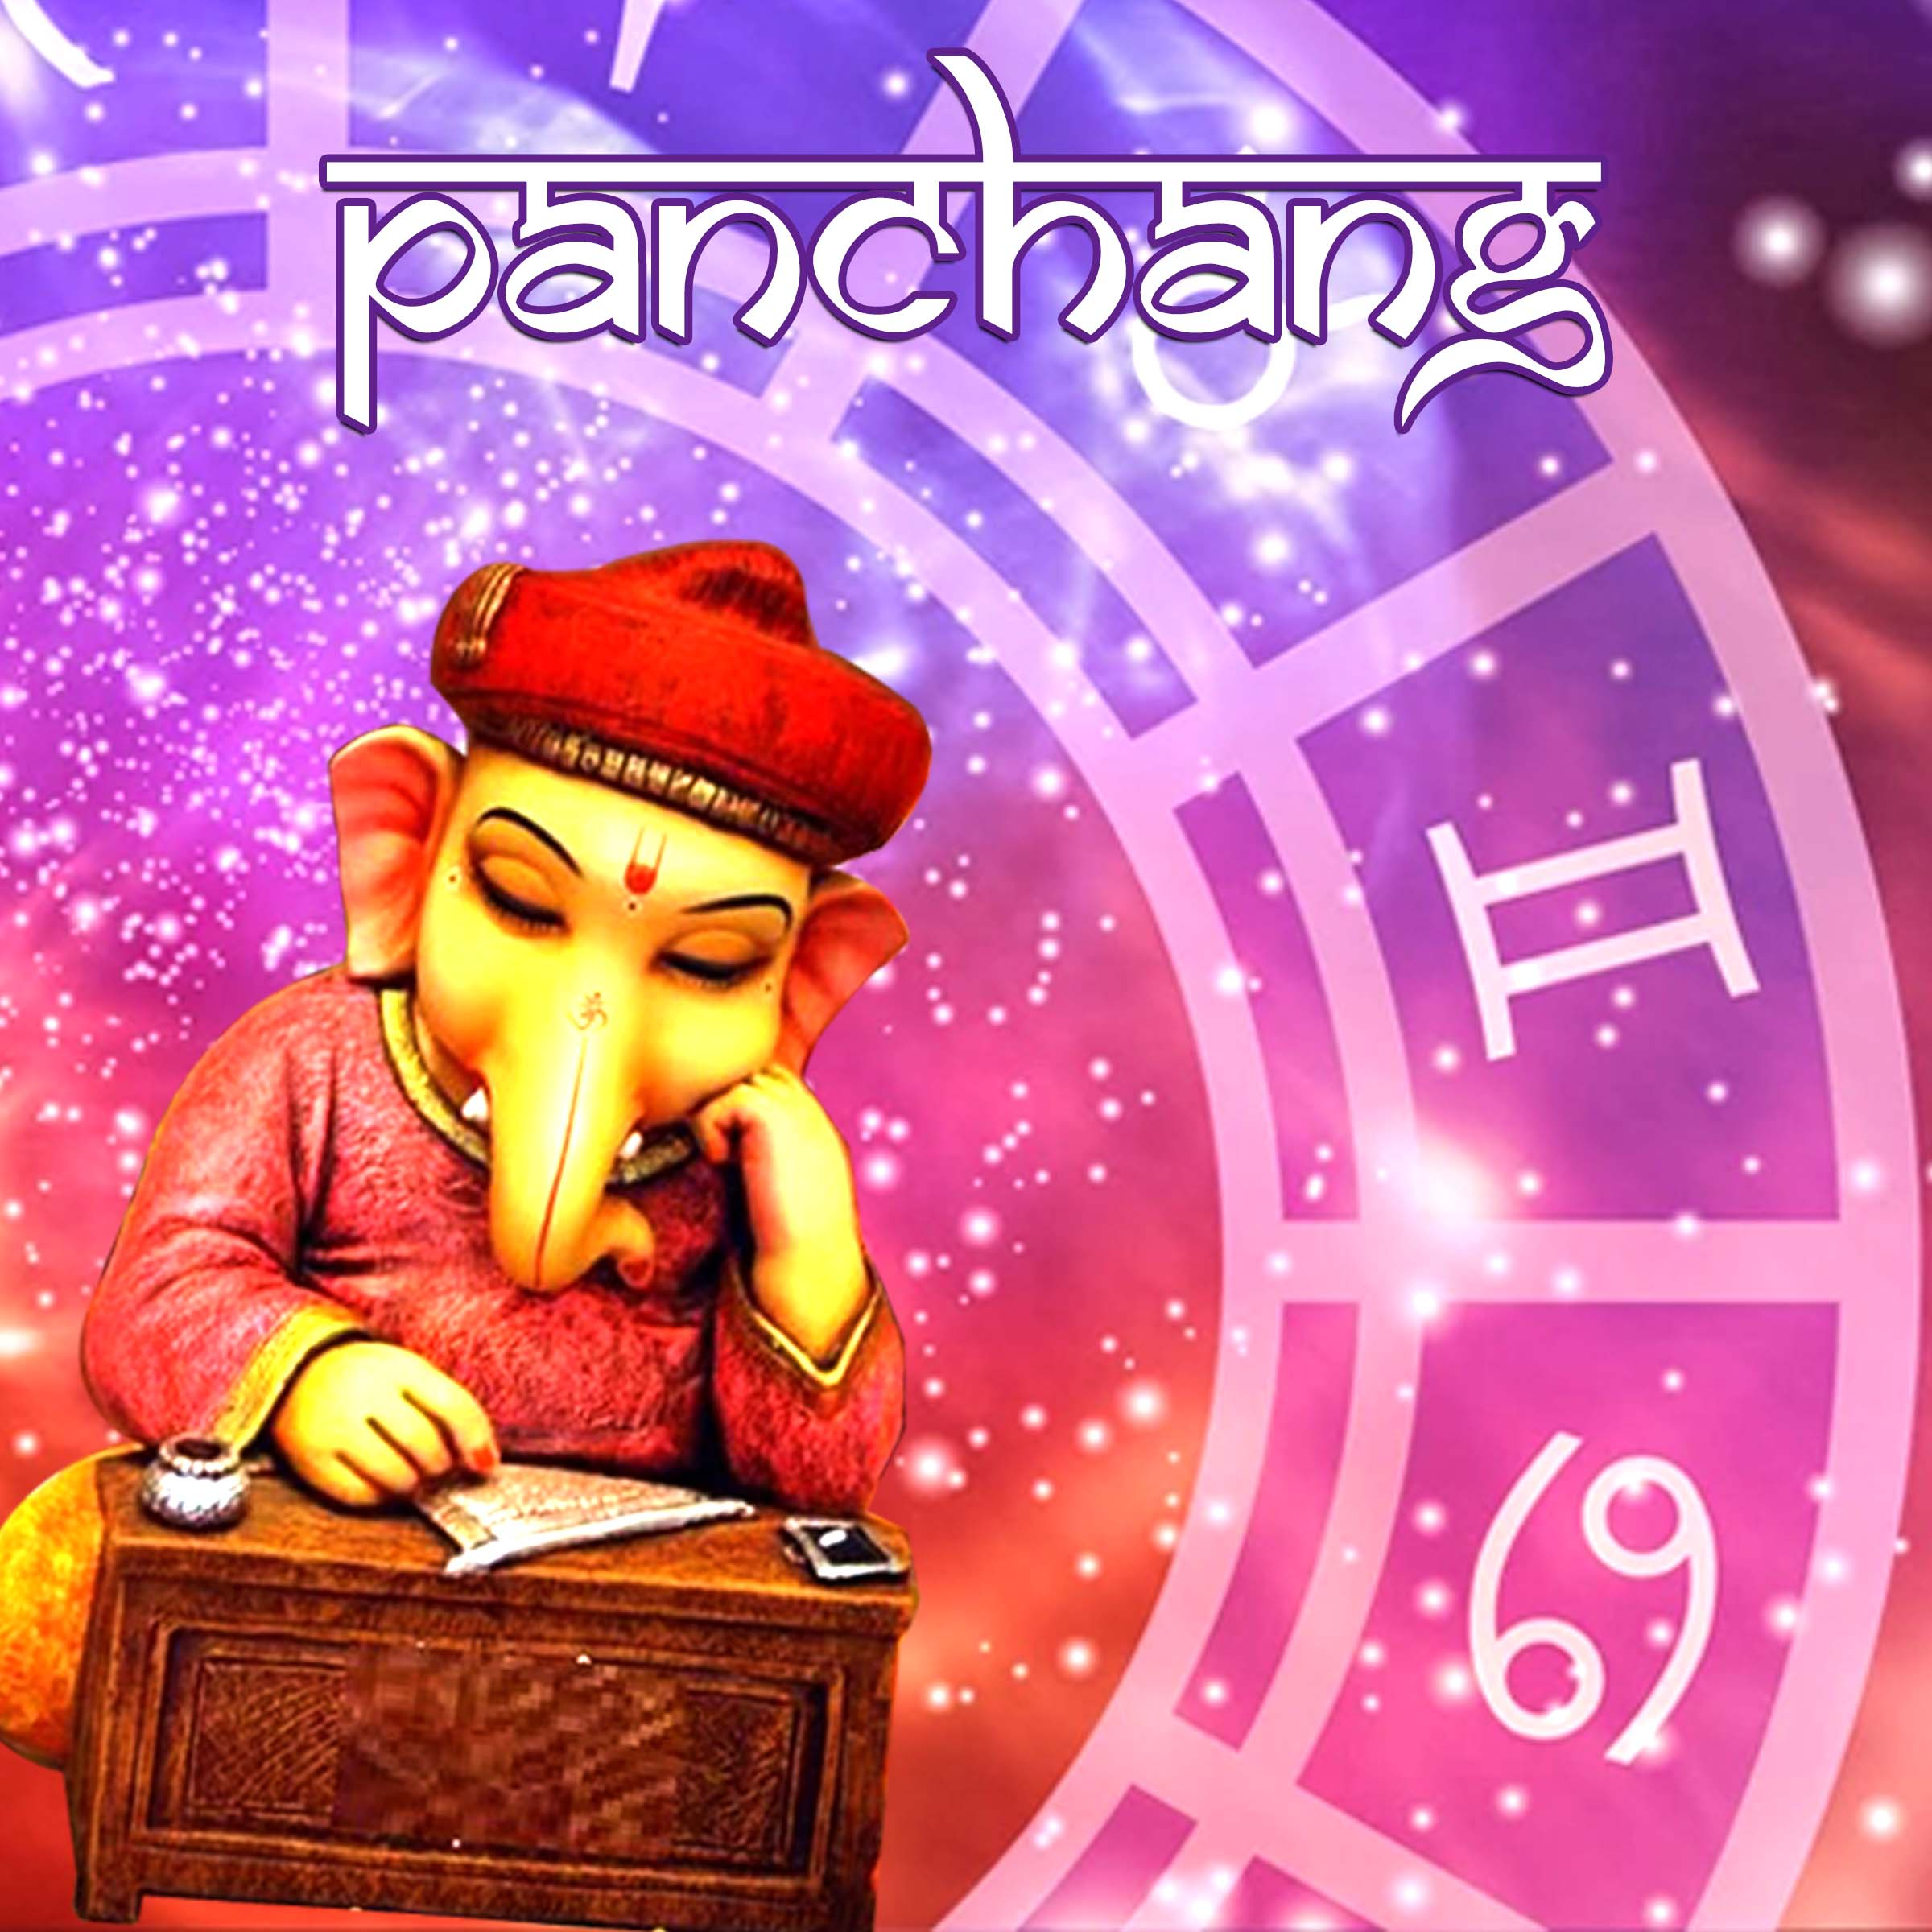 Panchang An insight